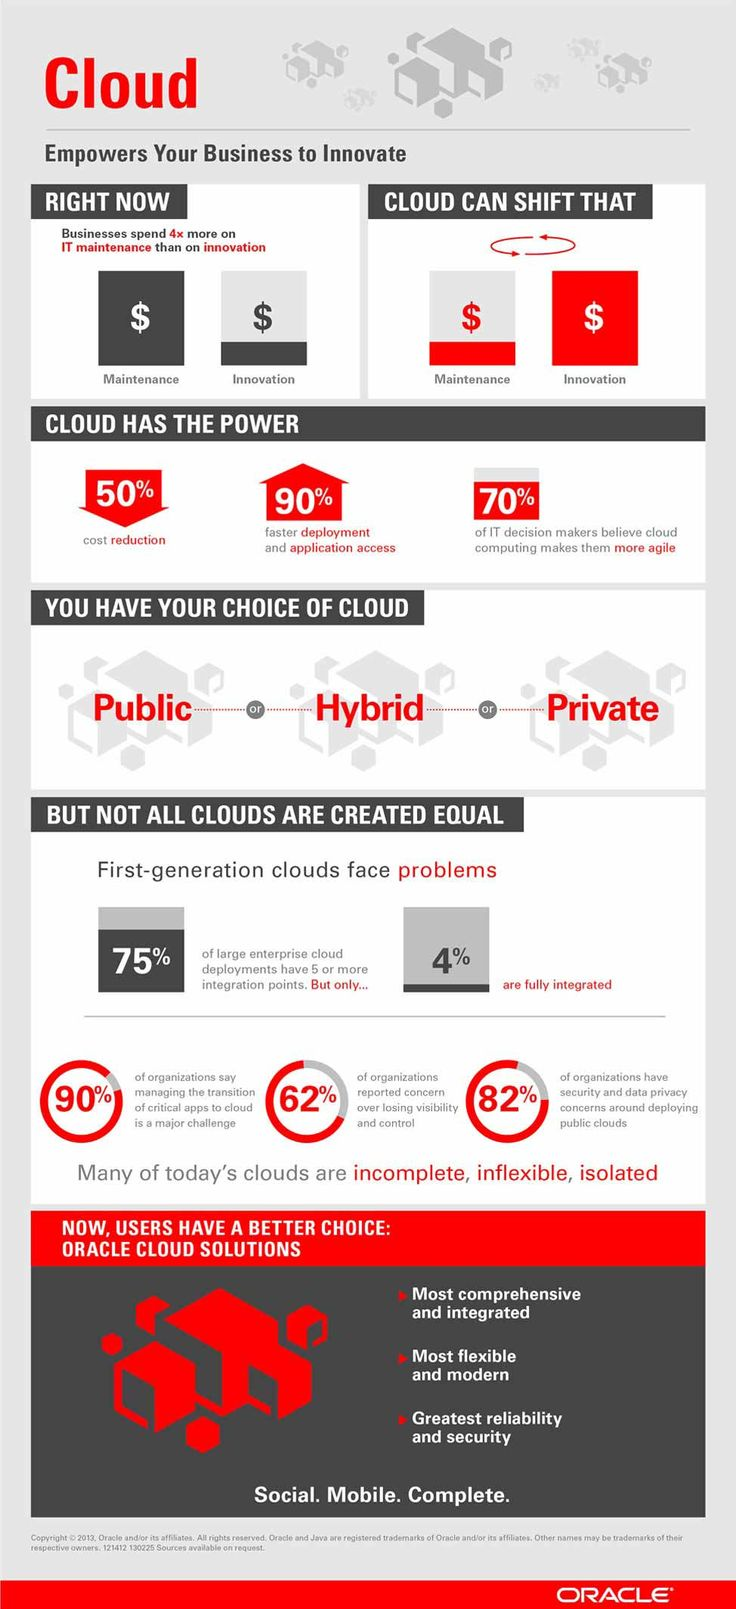 Businesses spend 4x more on IT maintenance than on innovation. Discover how cloud has the power to reduce costs, accelerate application deployment and improve access. http://oracle.com/Cloud #infographic #technology #cloud